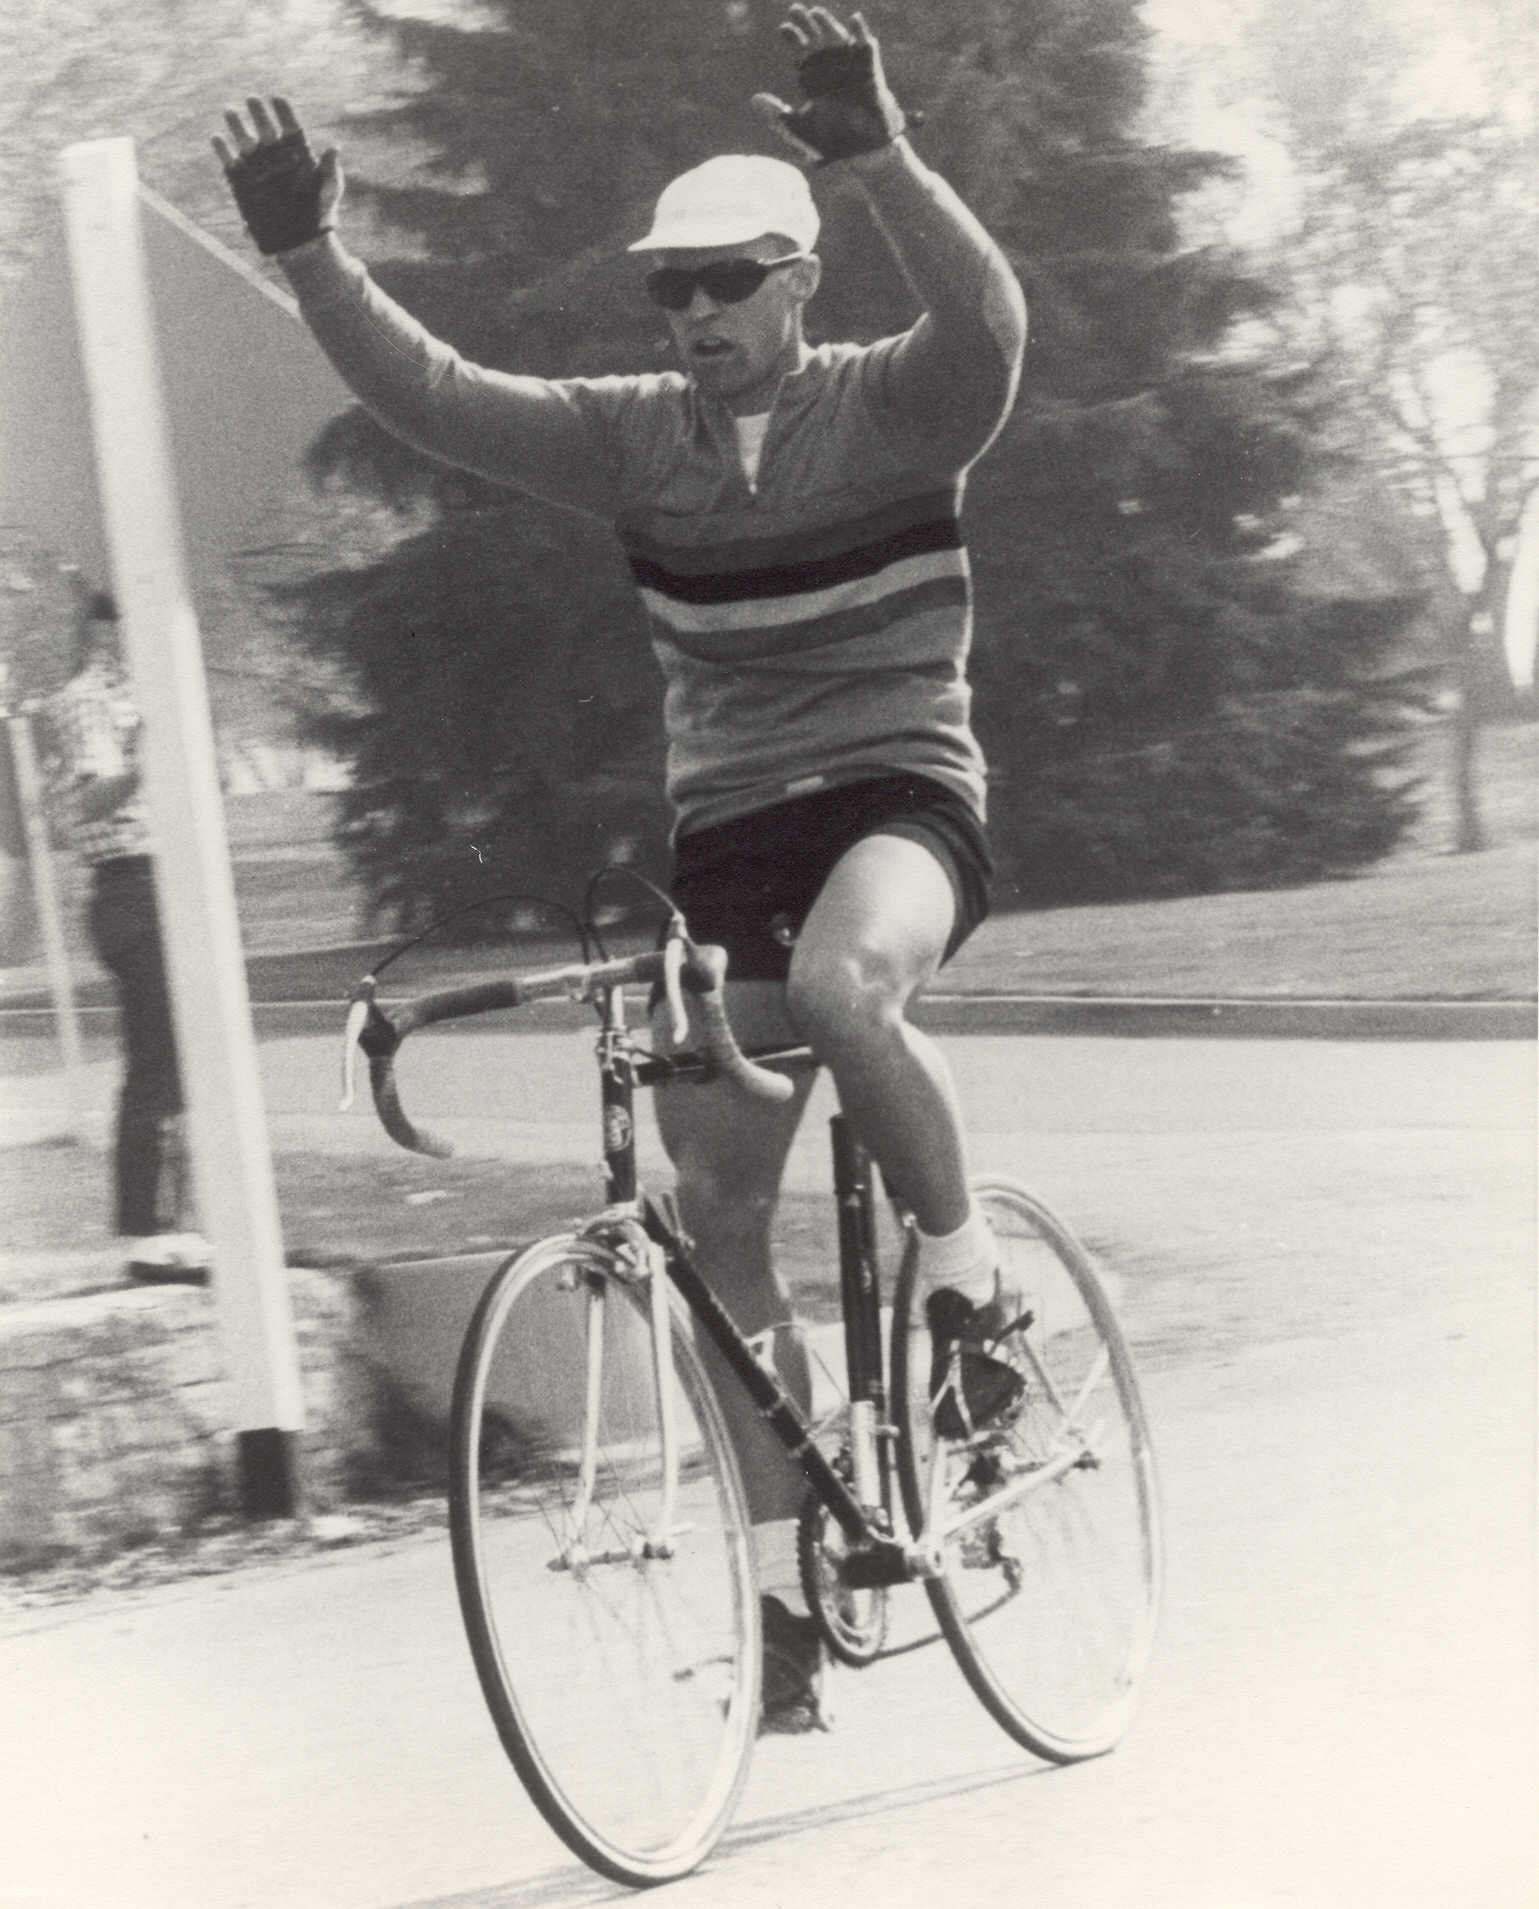 Jan Hyde raises his arms in victory in the BYU to UofU campus race aboard his now-classic Cinelli racing bike.